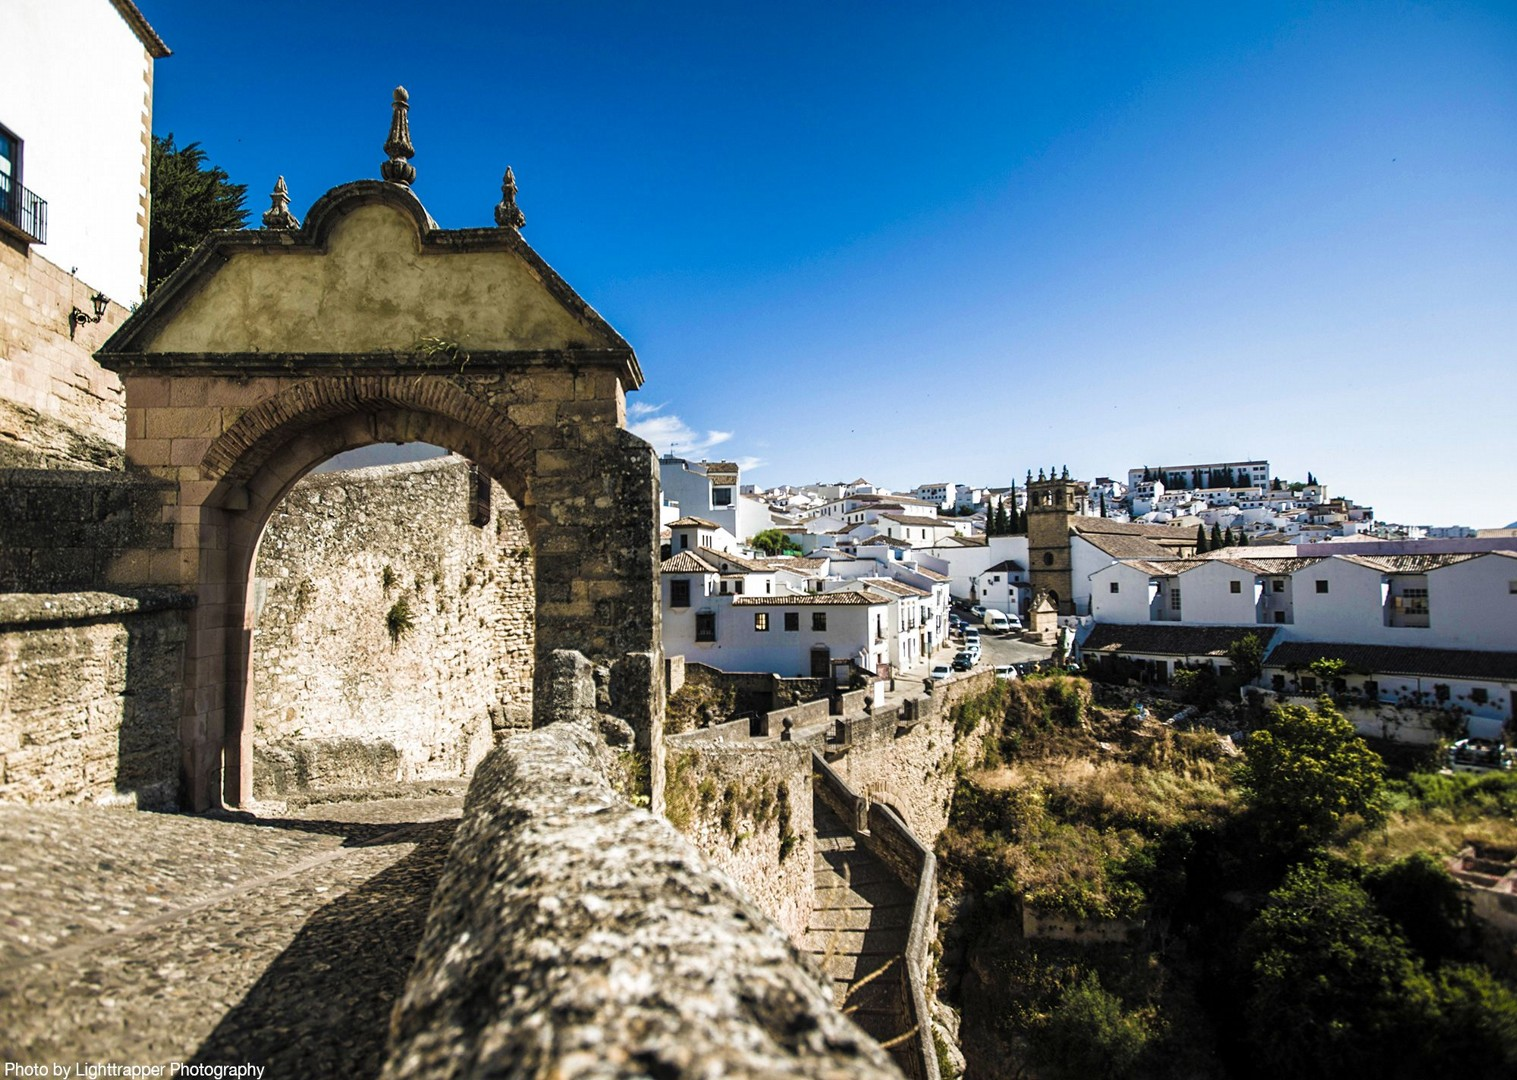 ronda-explore-by-bike-holiday-road-cycling-culture.jpg - Southern Spain - Roads of Ronda - Self-Guided Road Cycling Holiday - Road Cycling